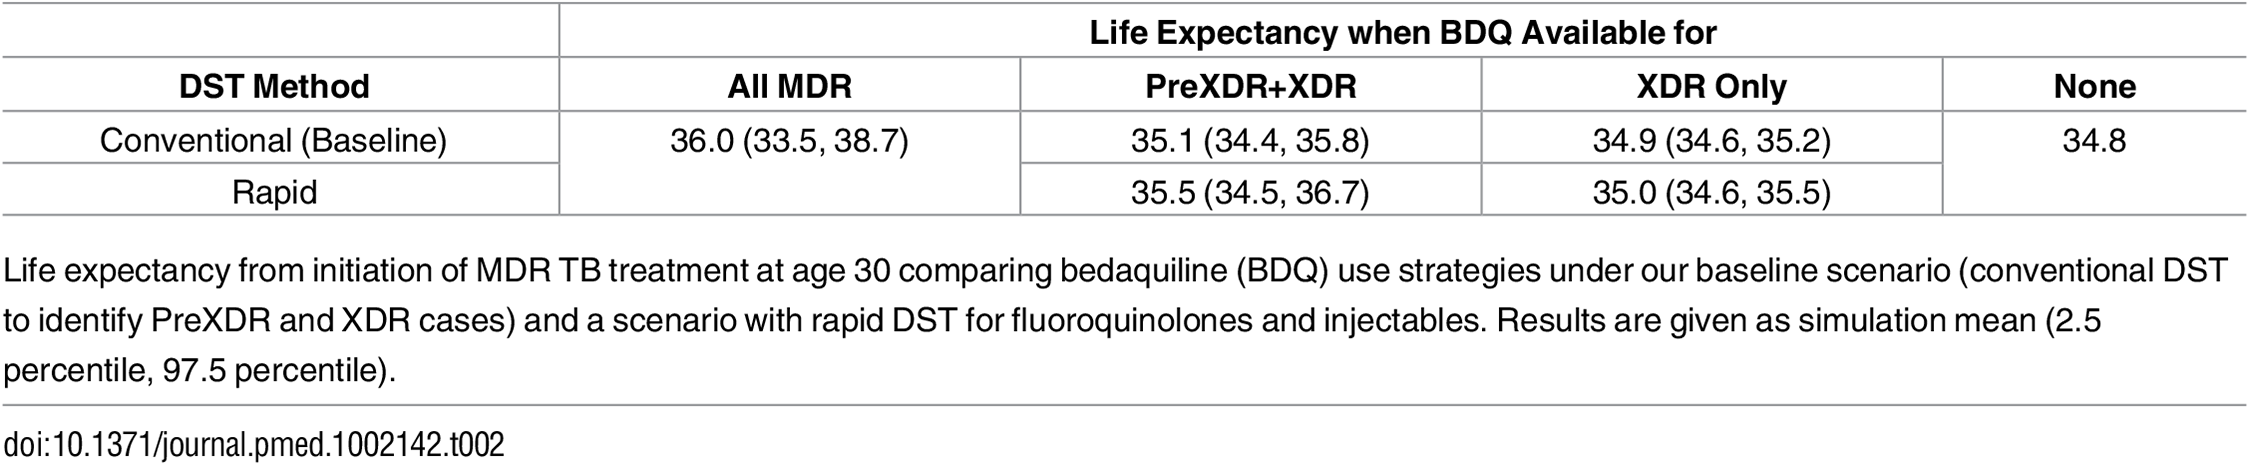 Life expectancy by DST method.